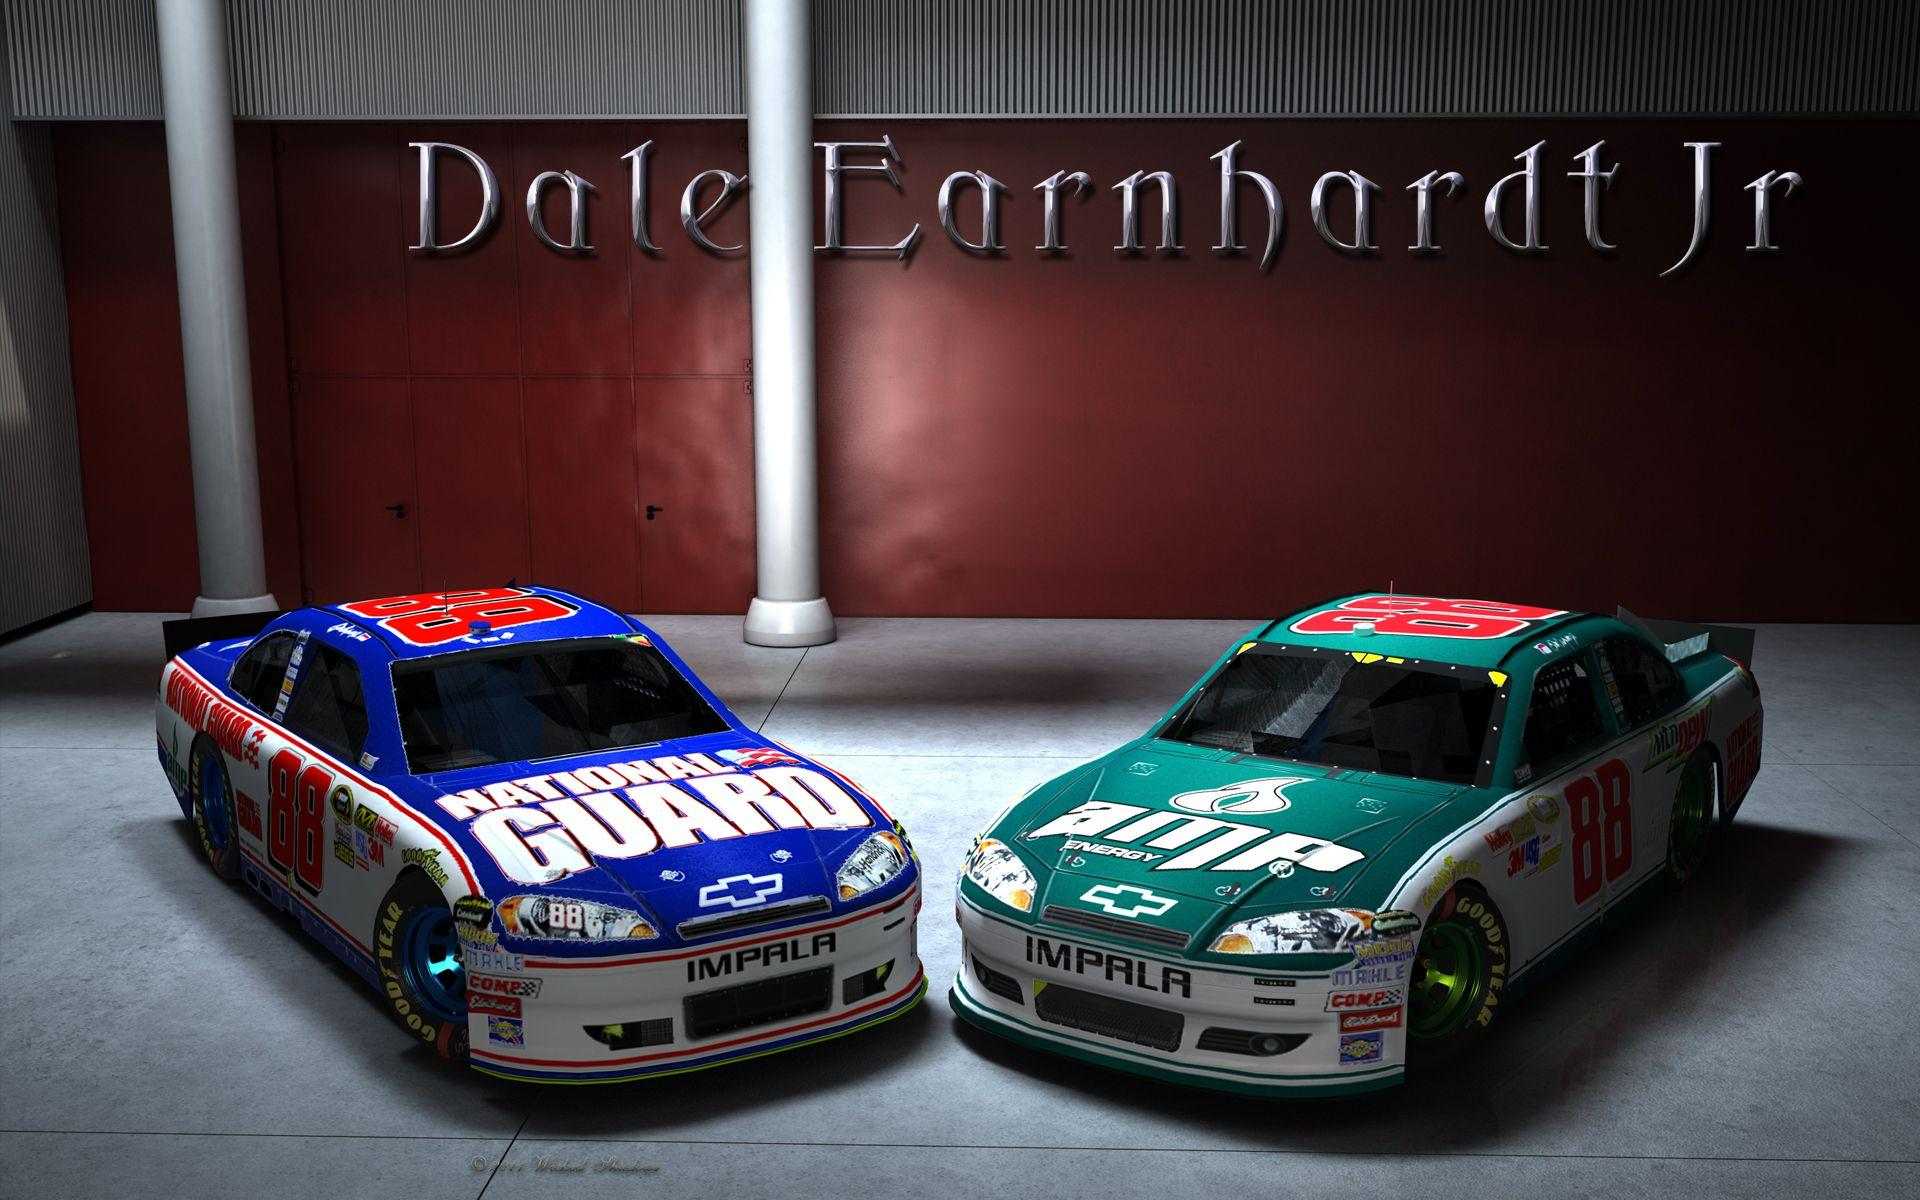 Wallpapers By Wicked Shadows Dale Earnhardt Sr Blackout: Dale Earnhardt Sr Wallpapers